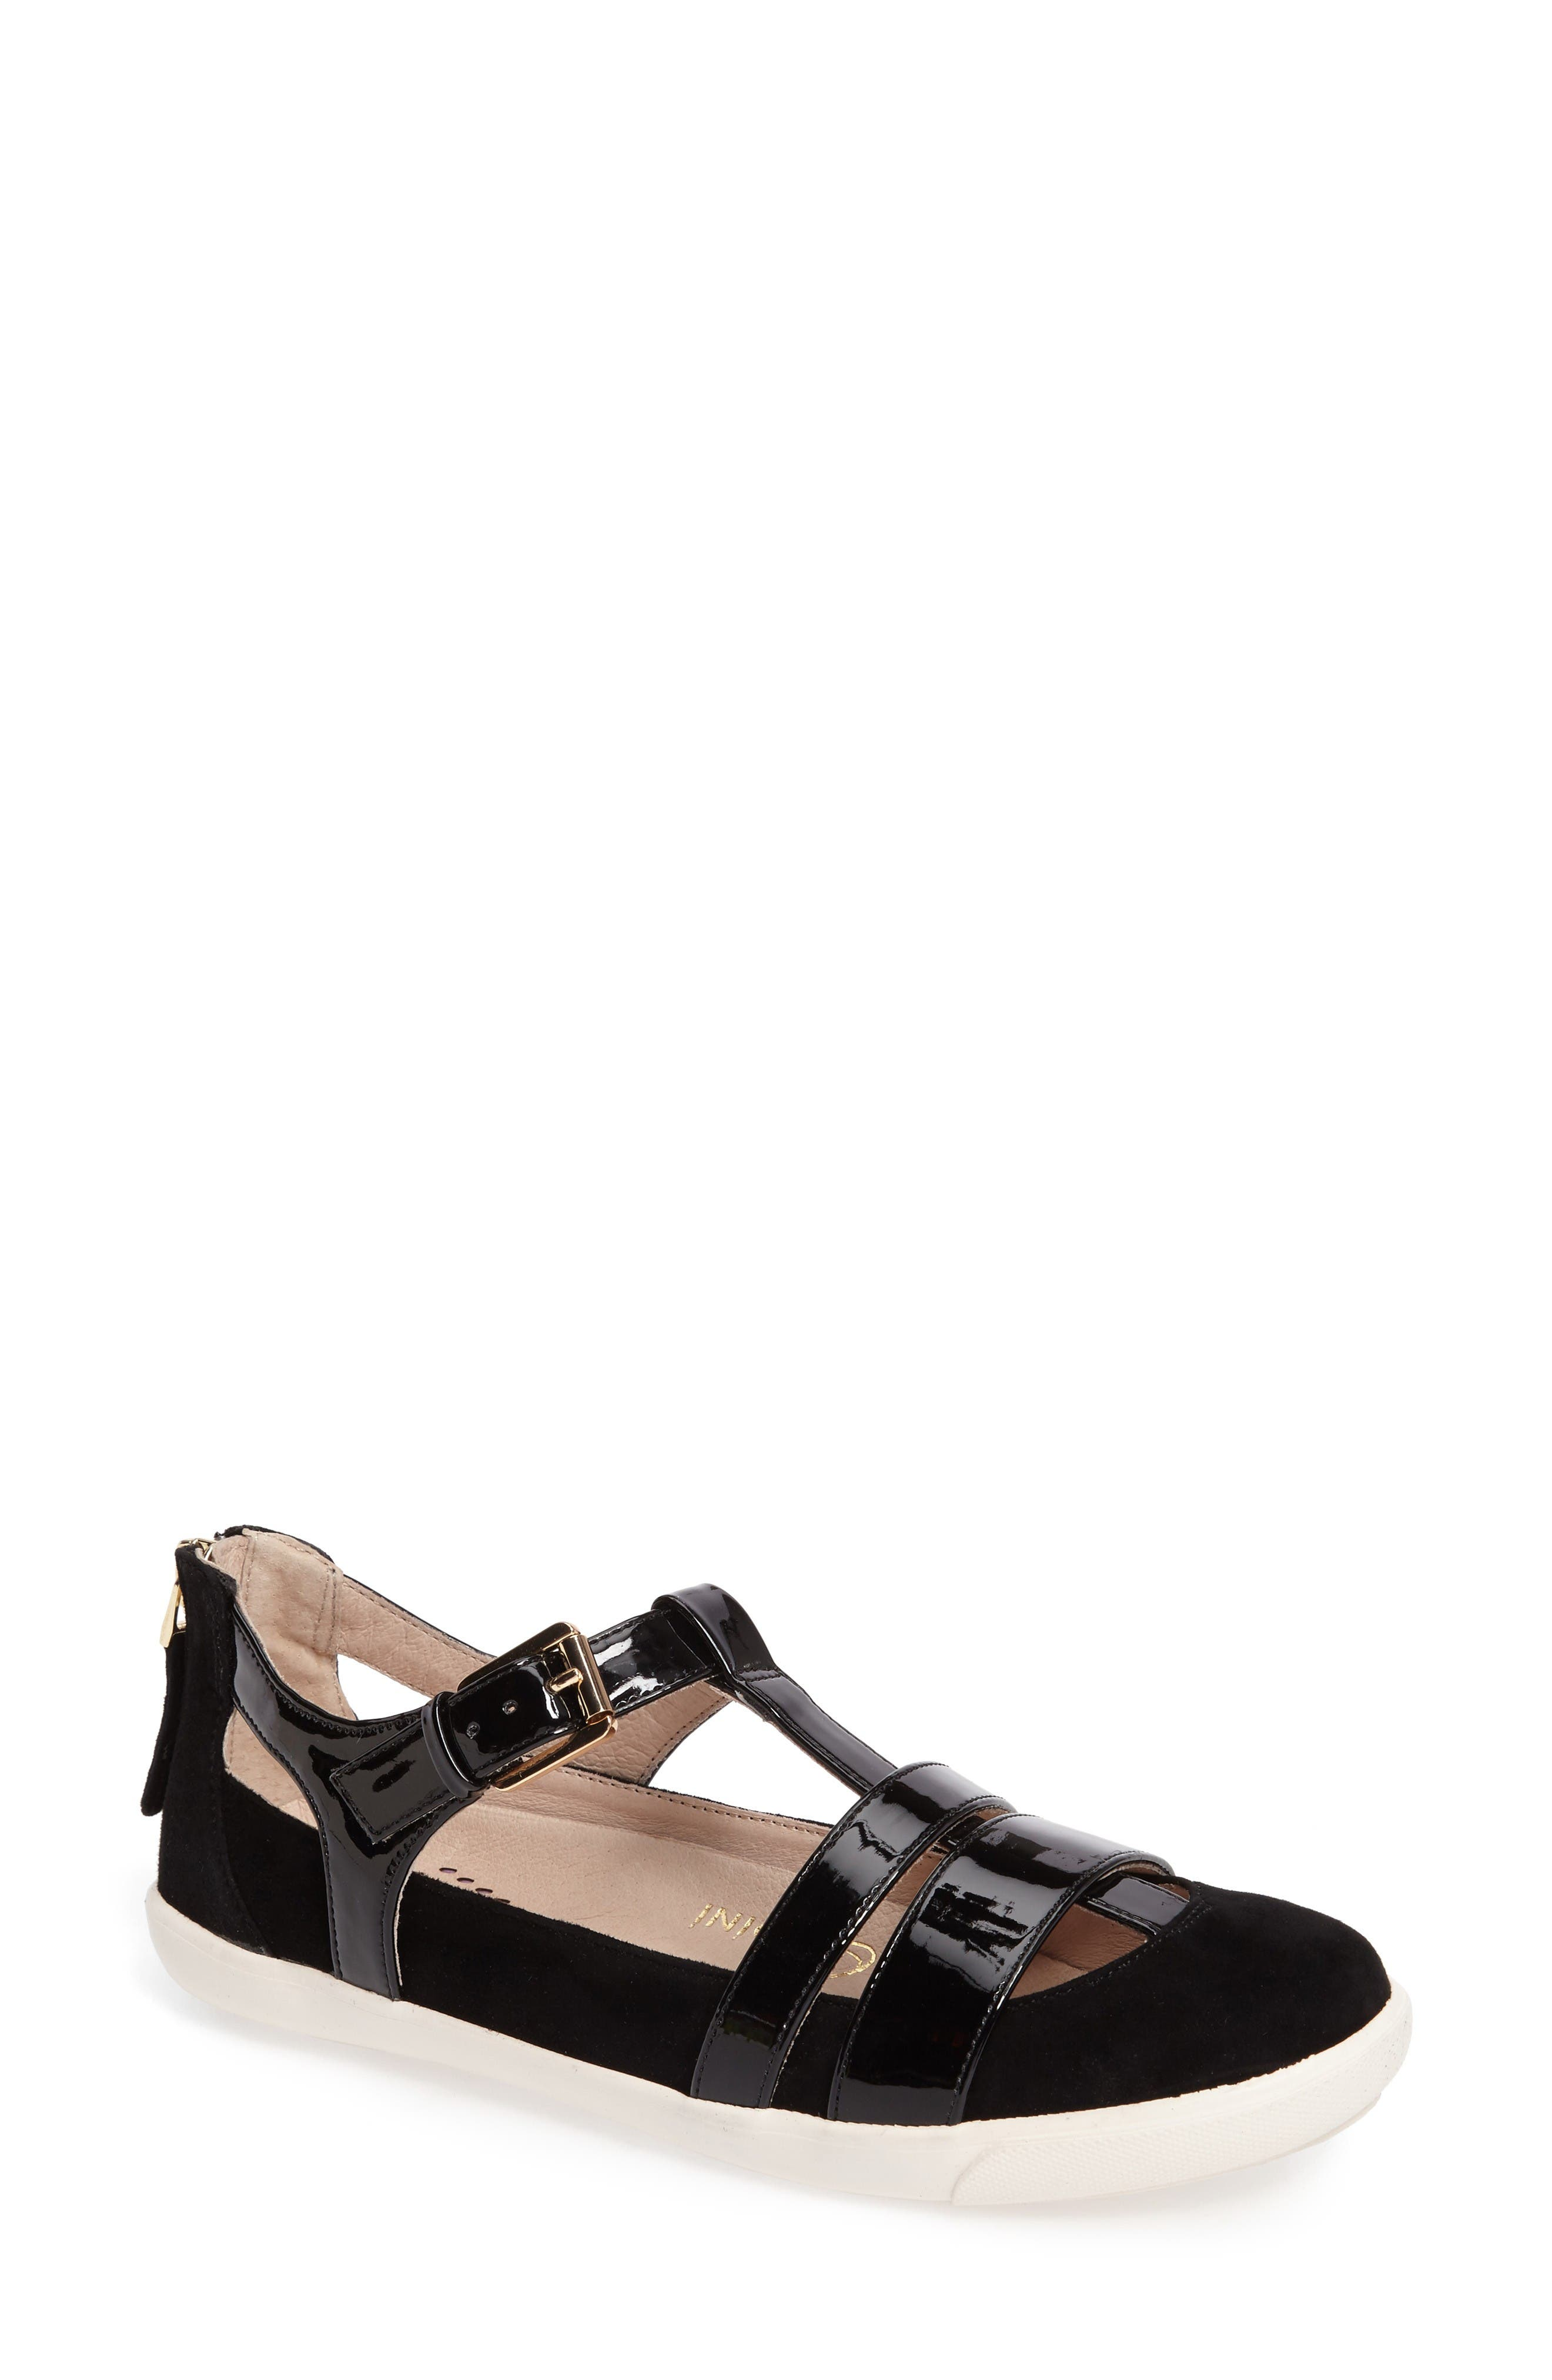 Iona Strappy Sneaker,                             Main thumbnail 1, color,                             Black Leather